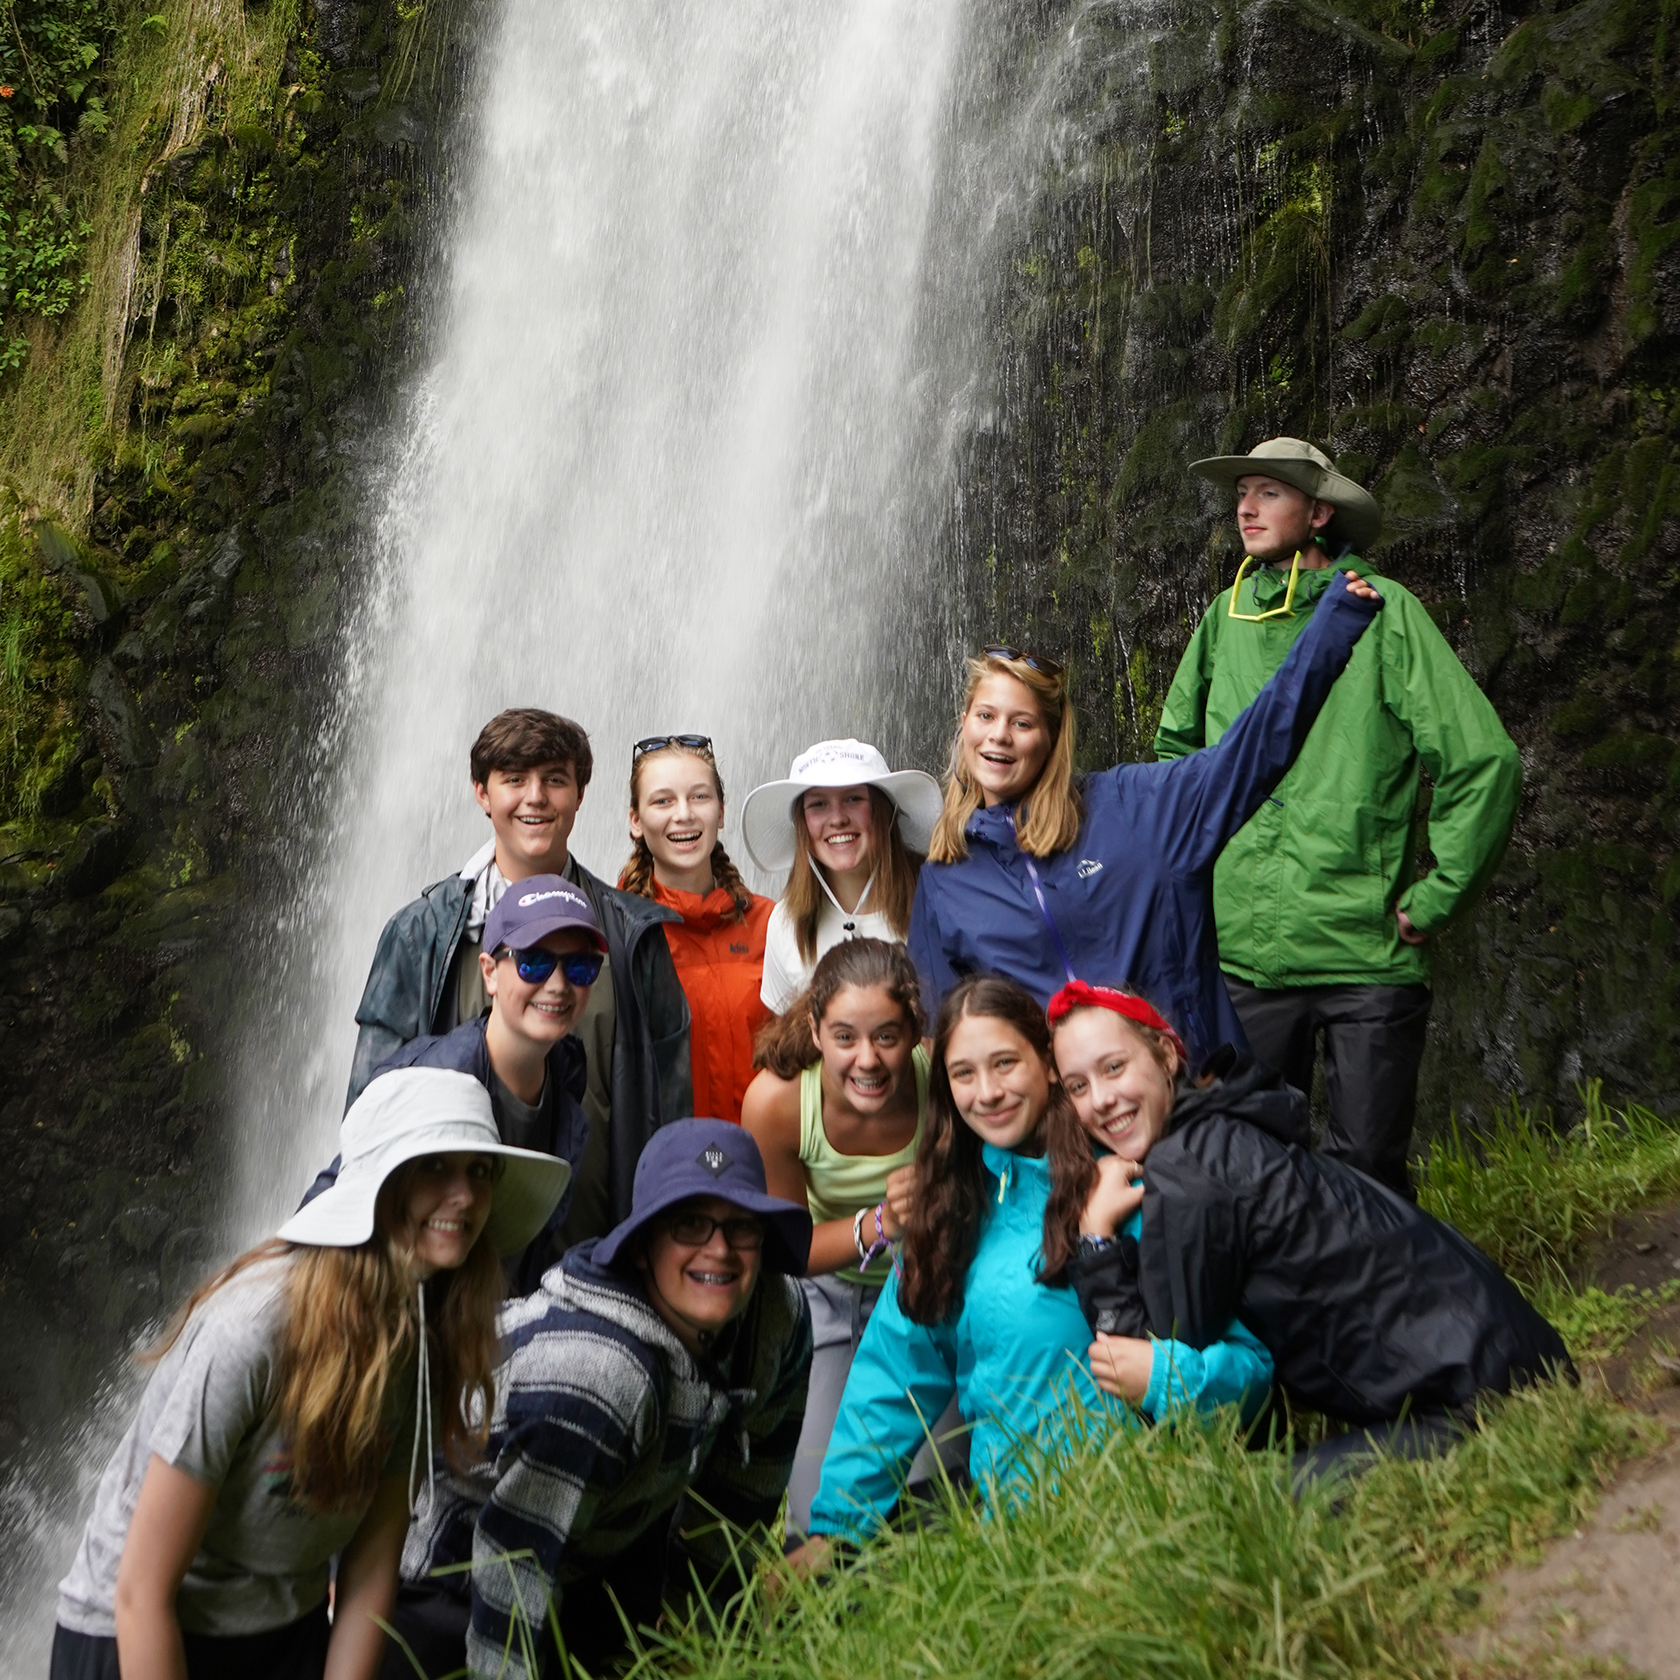 Group of travelers in front of a waterfall on the Ecuador Galapagos trip